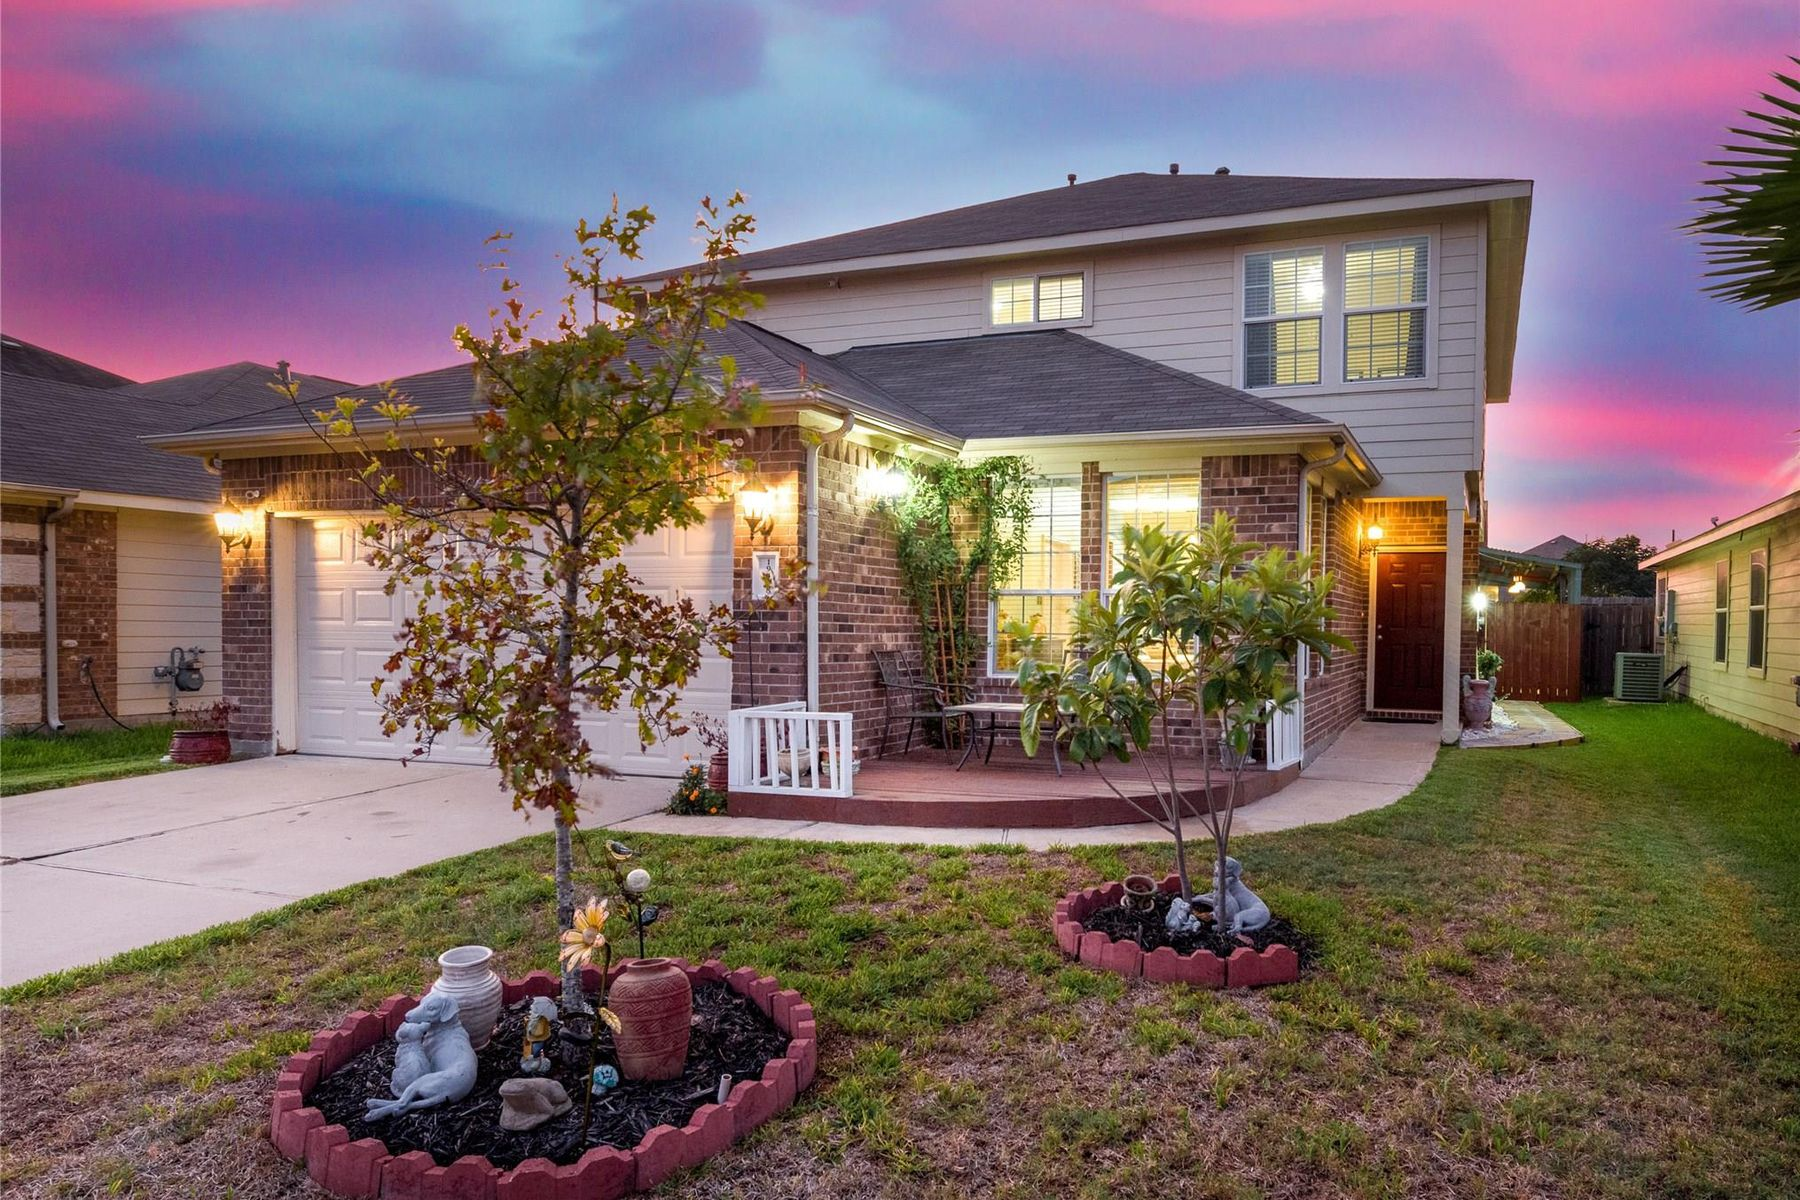 Single Family Homes for Sale at 19458 Plantation Cove Lane Katy, Texas 77449 United States